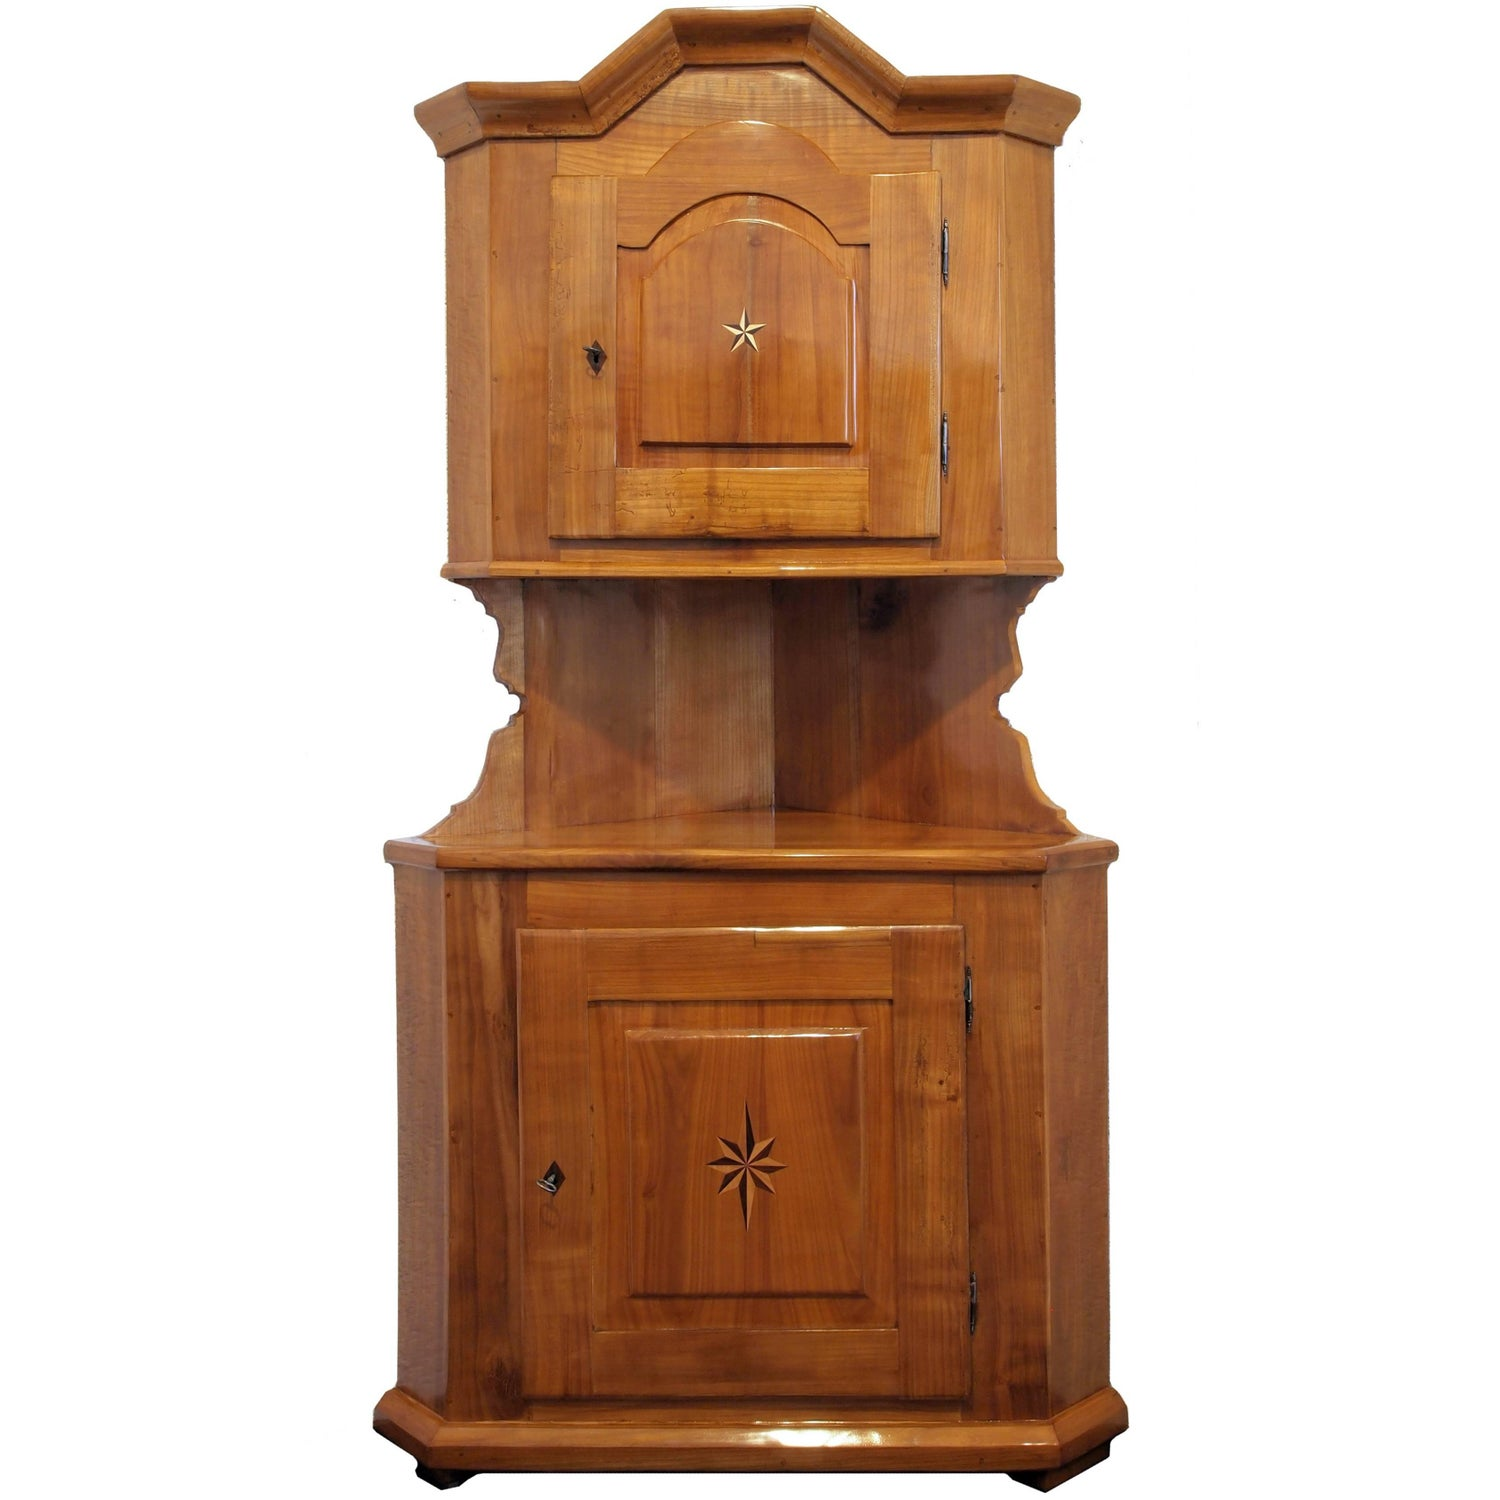 Antique kitchen corner cabinets - 19th Century Cherry Wood Biedermeier Corner Cabinet Or Cupboard